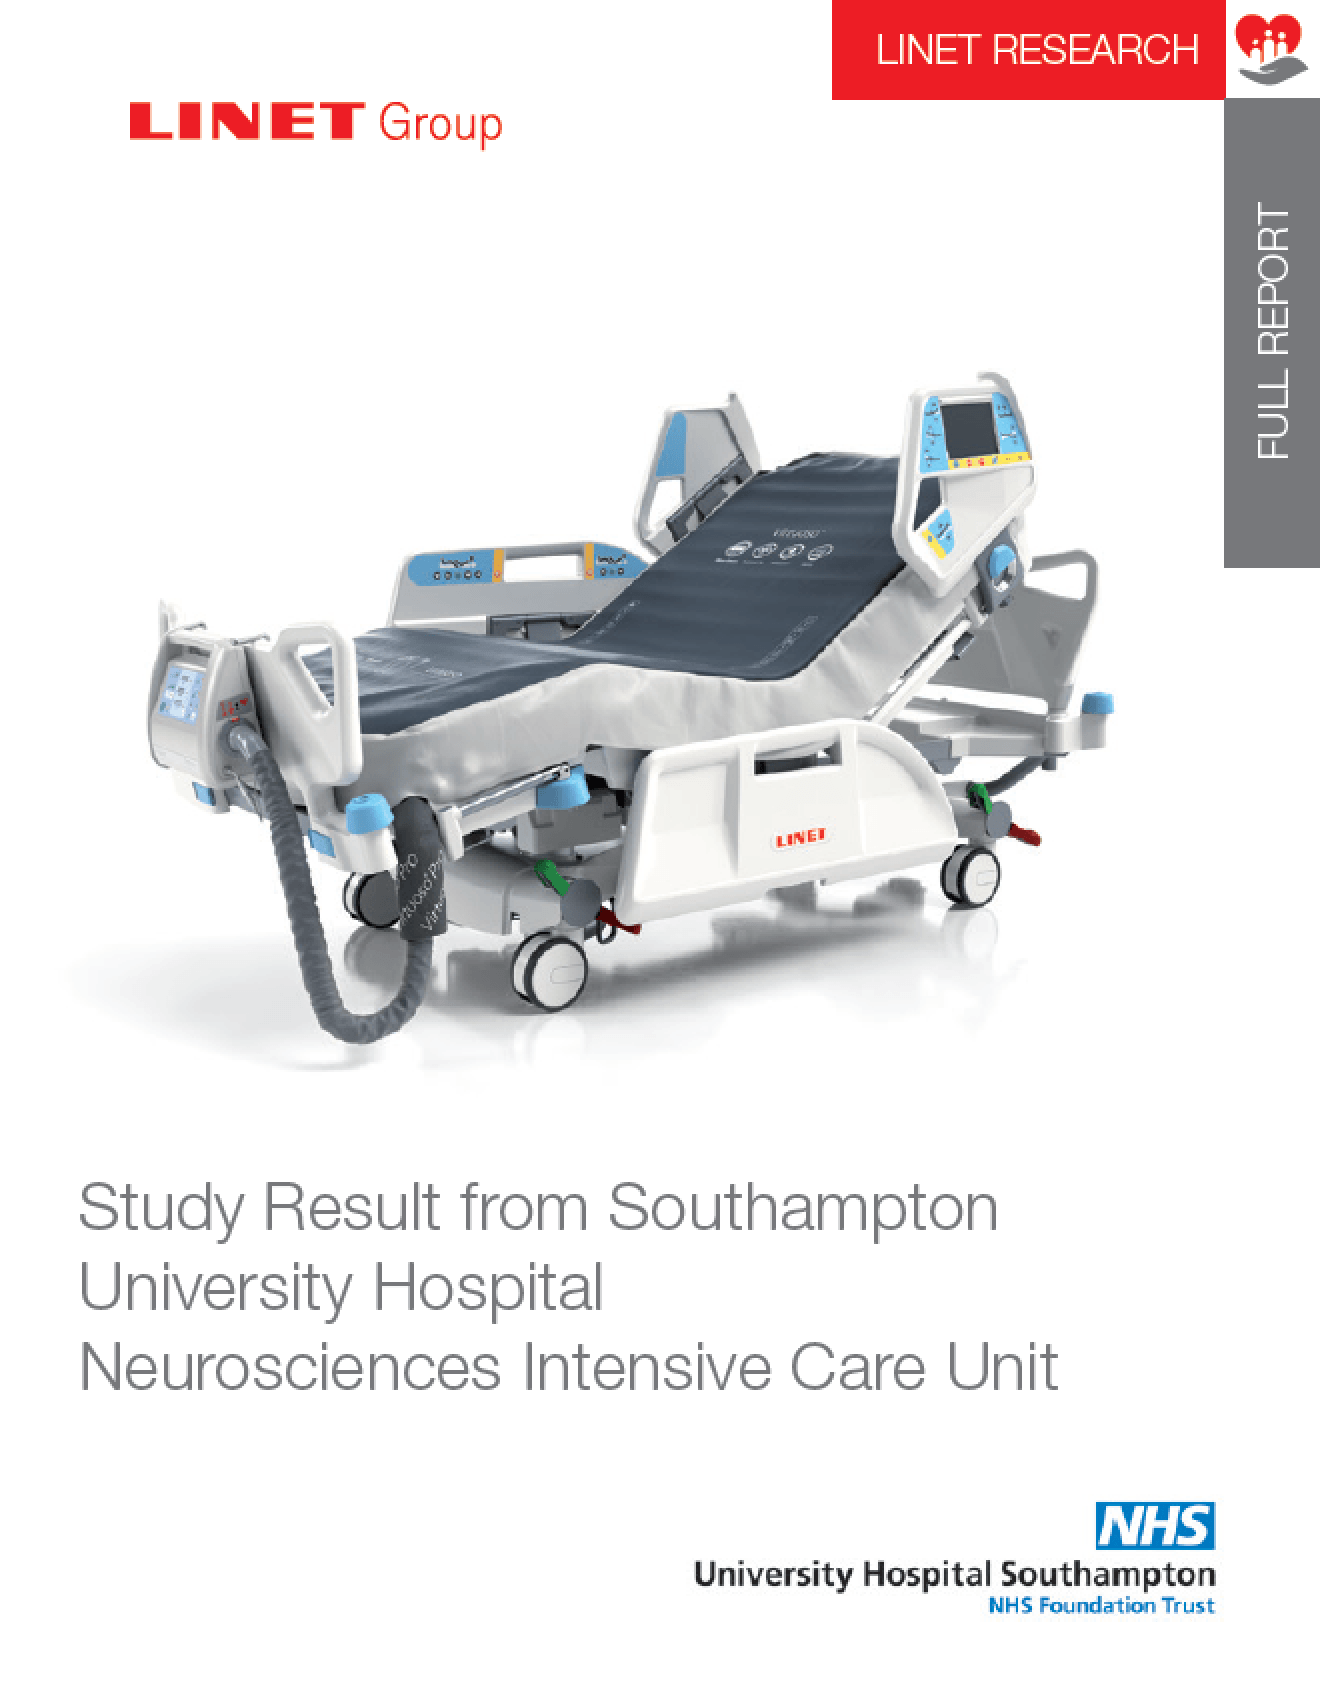 Linet Research: Study Result from Southampton University Hospital Neurosciences Intensive Care Unit